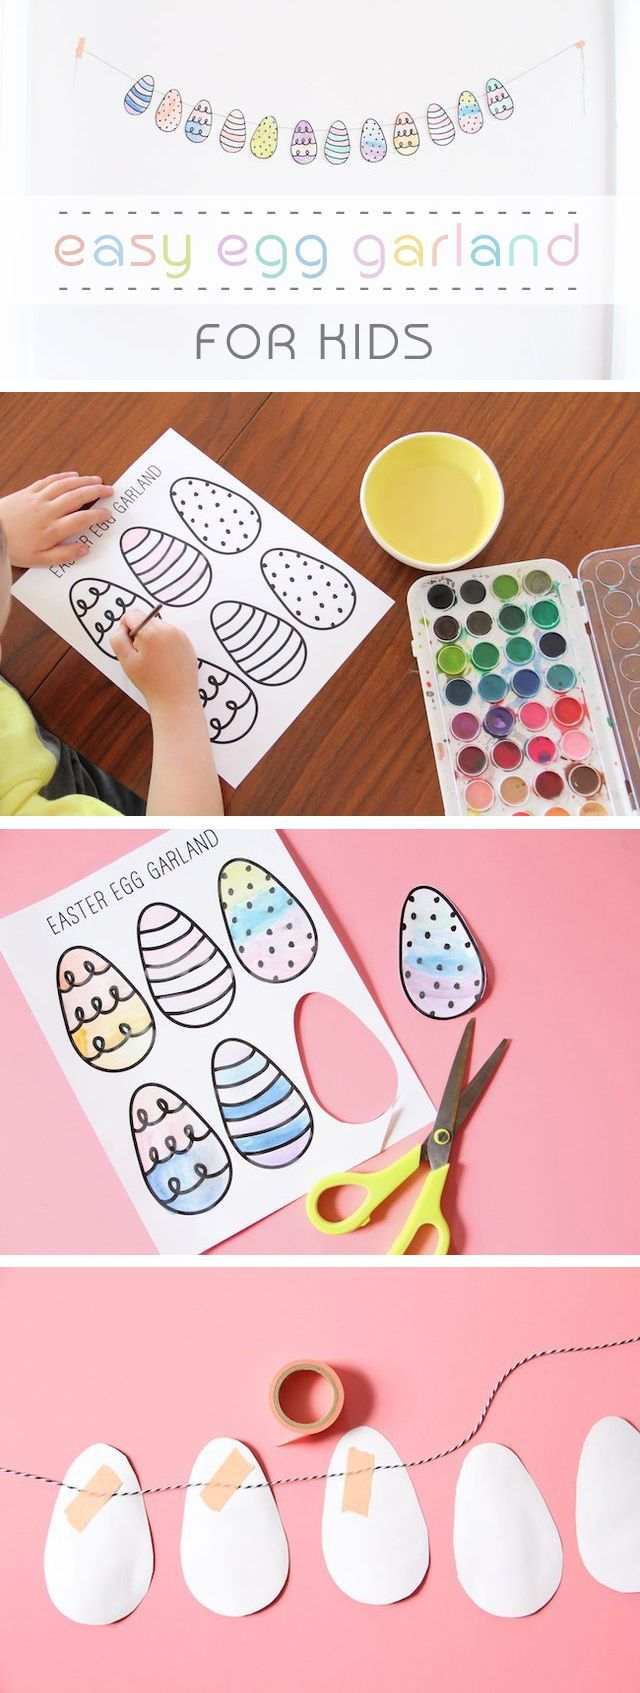 Printable, coloring eggs are included! A great Easter crafts for kids that you can also decorate the house with. You might want to join in on the coloring fun, we definitely do!